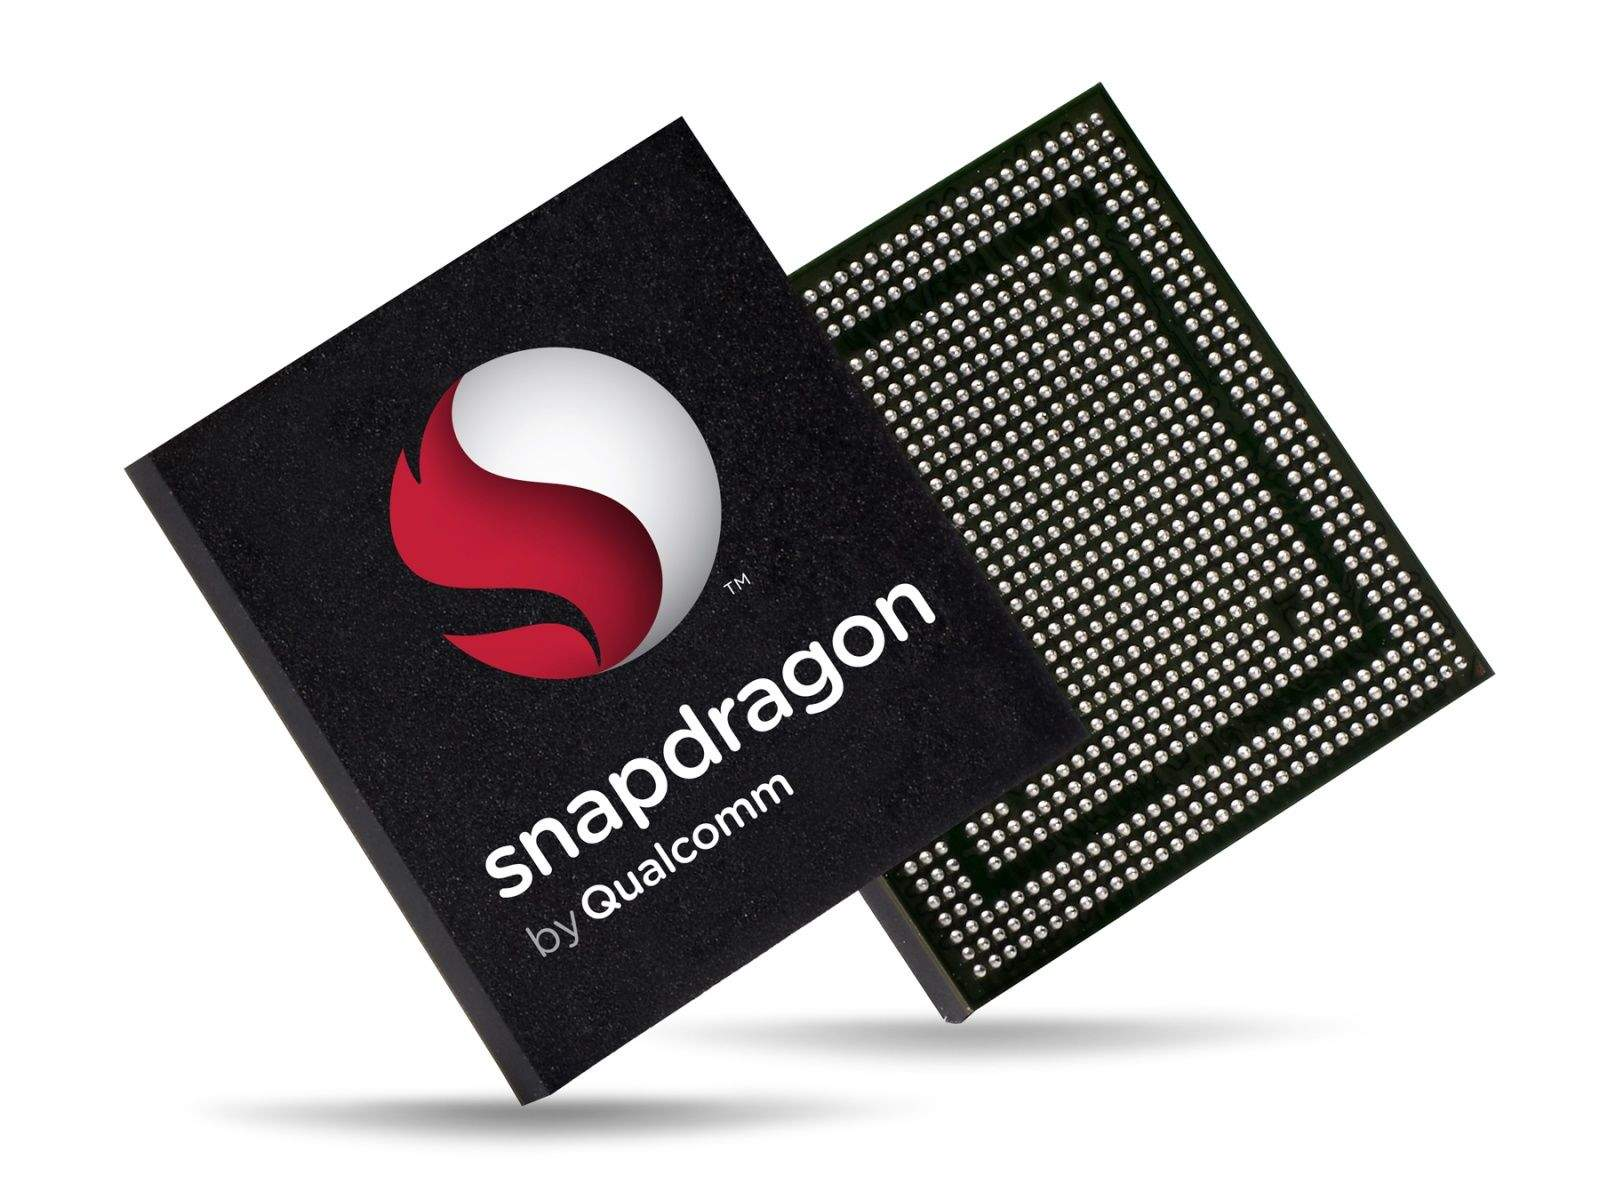 Cult of Android - Octa-core Snapdragon 615 could power your